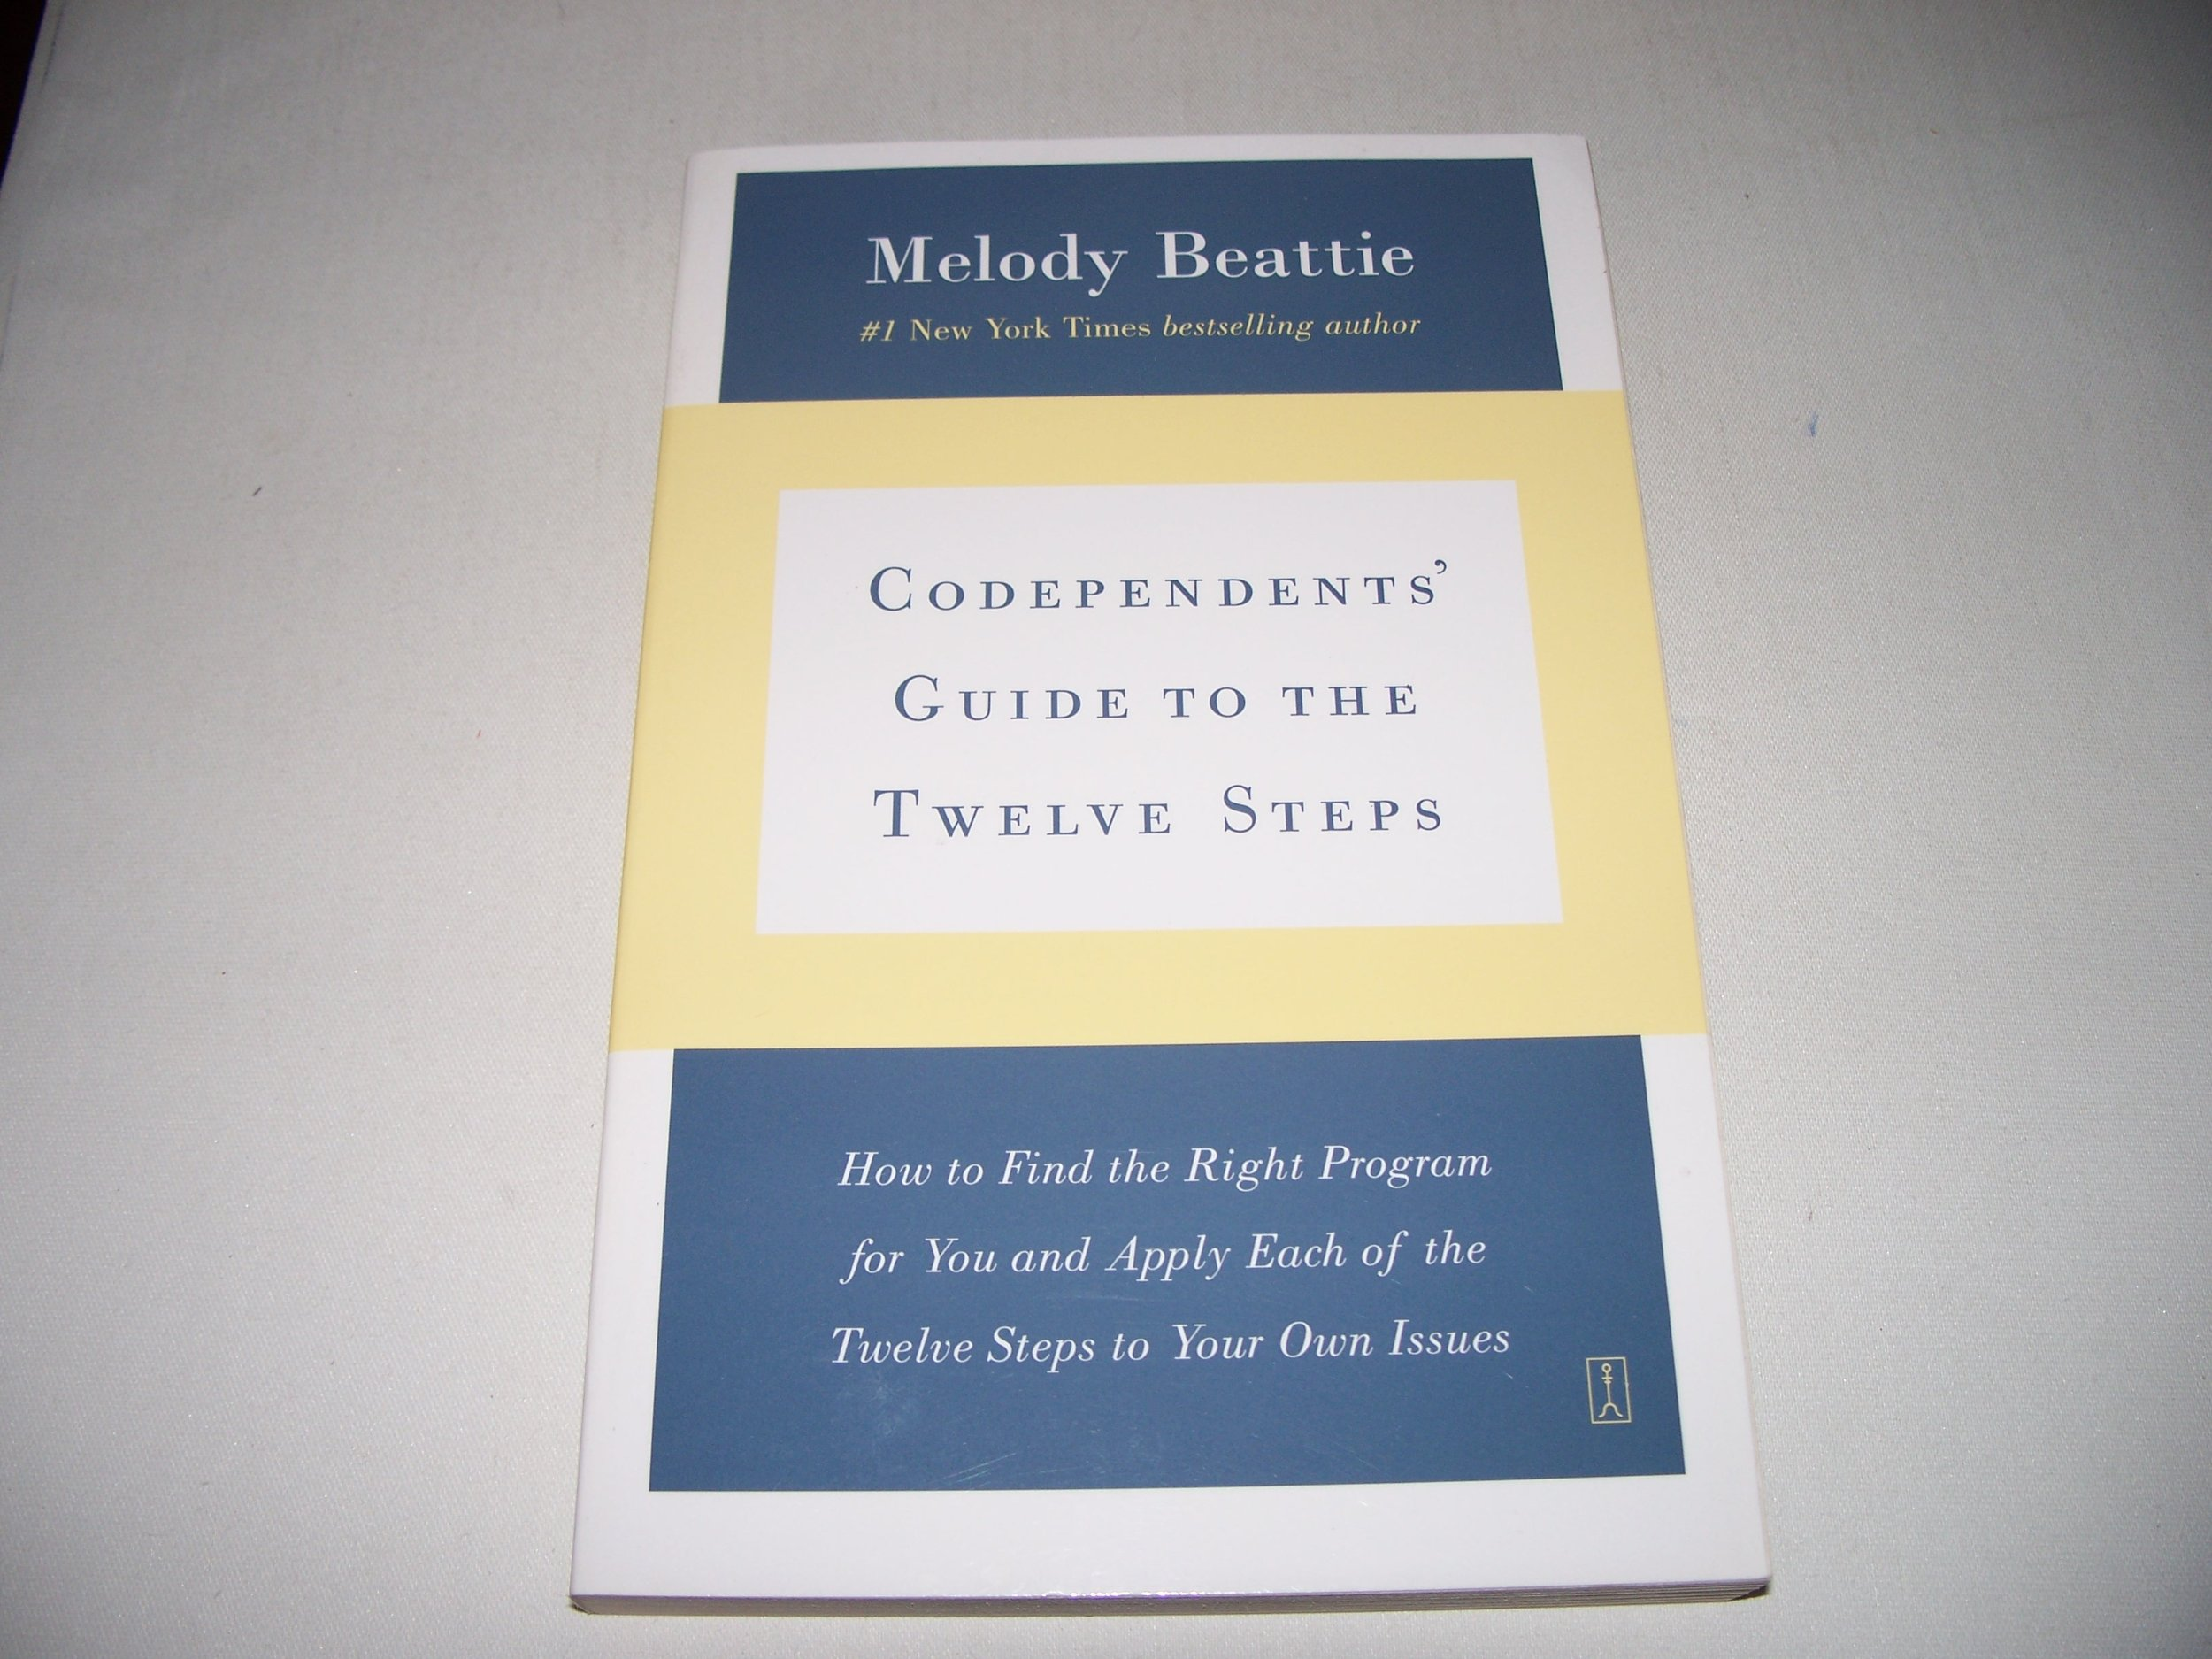 Codependents' Guide to the Twelve Steps: Melody Beattie: Amazon.com: Books